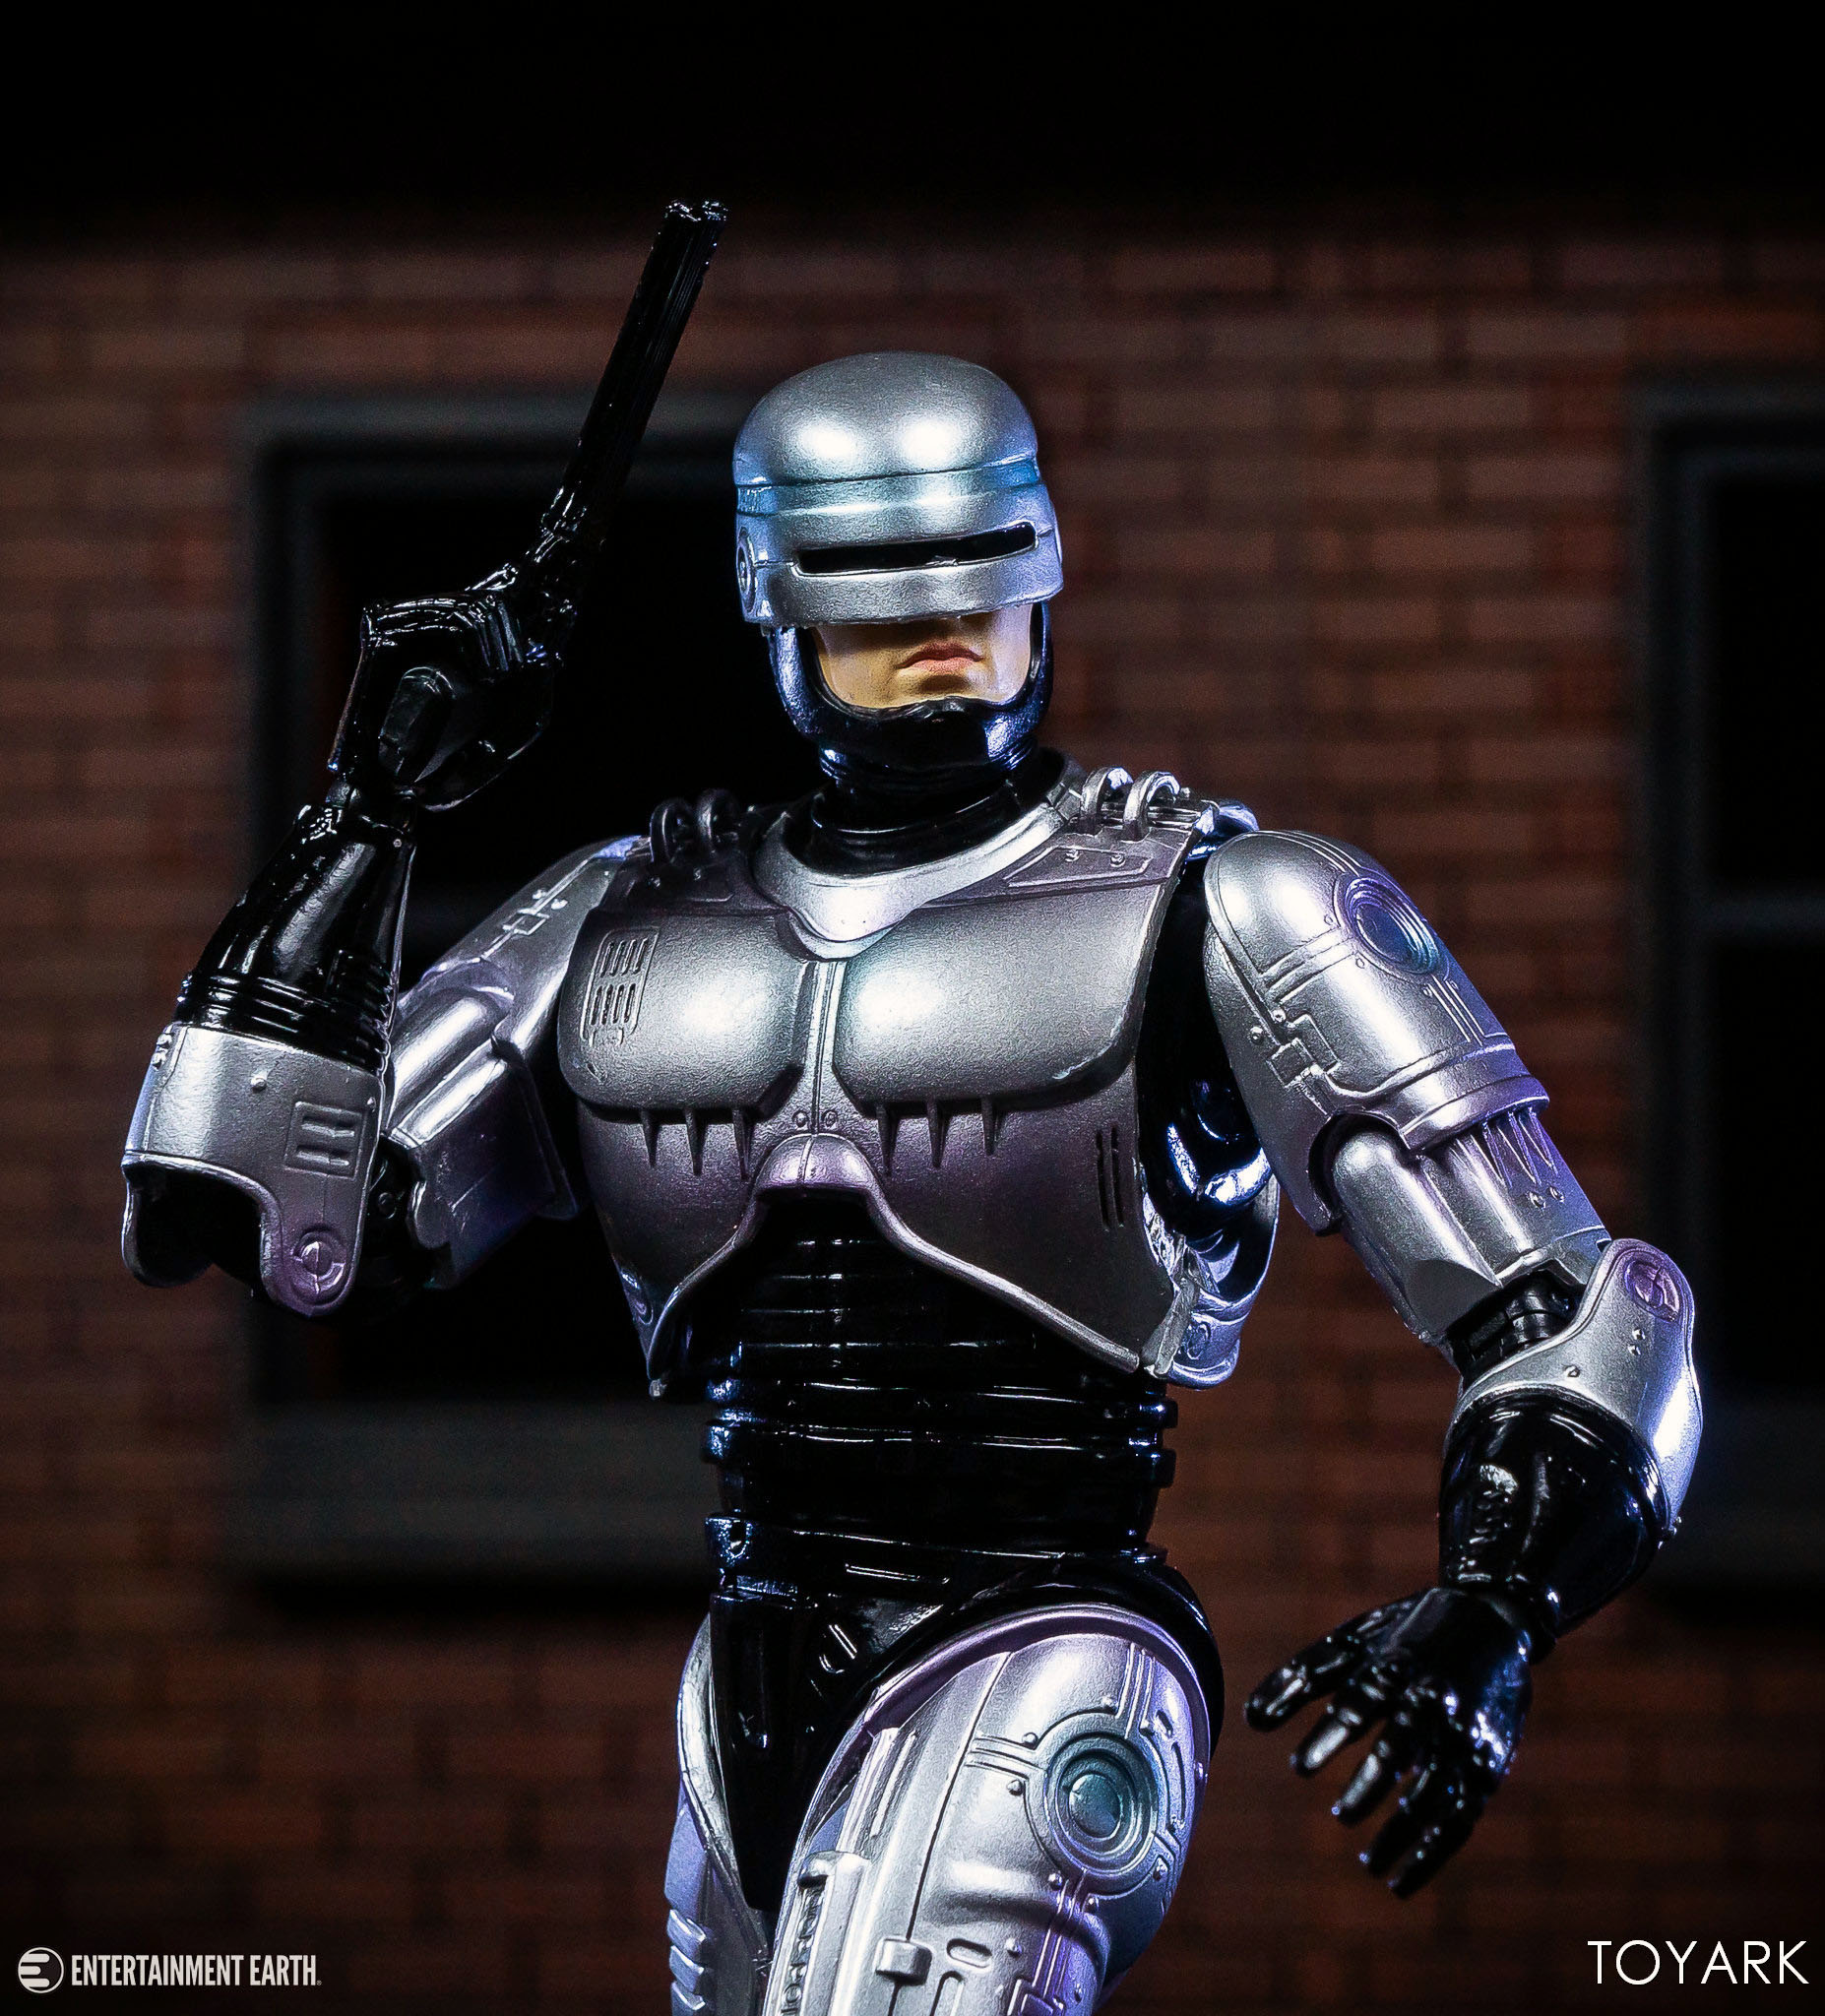 https://news.toyark.com/wp-content/uploads/sites/4/2019/03/MAFEX-Robocop-Gallery-006.jpg